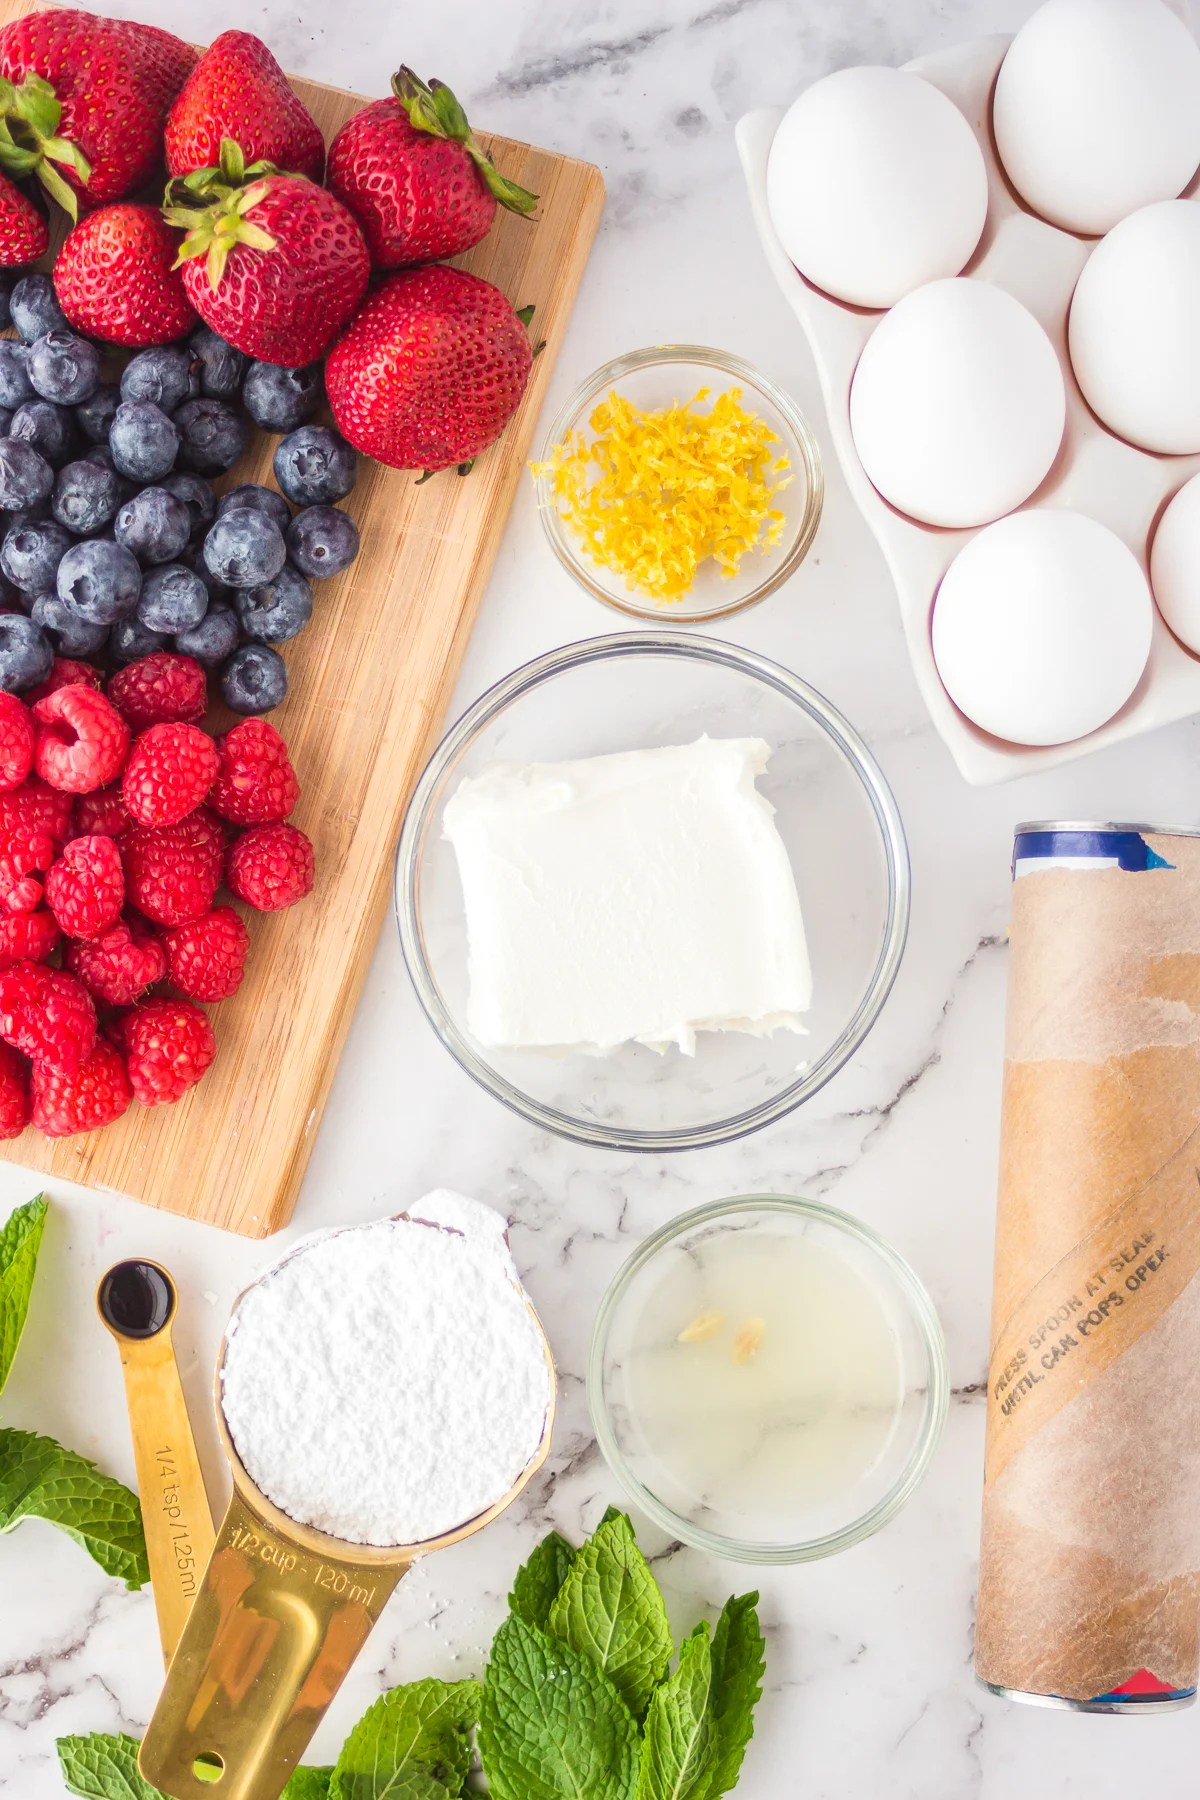 Ingredients needed to make Berry Tarts